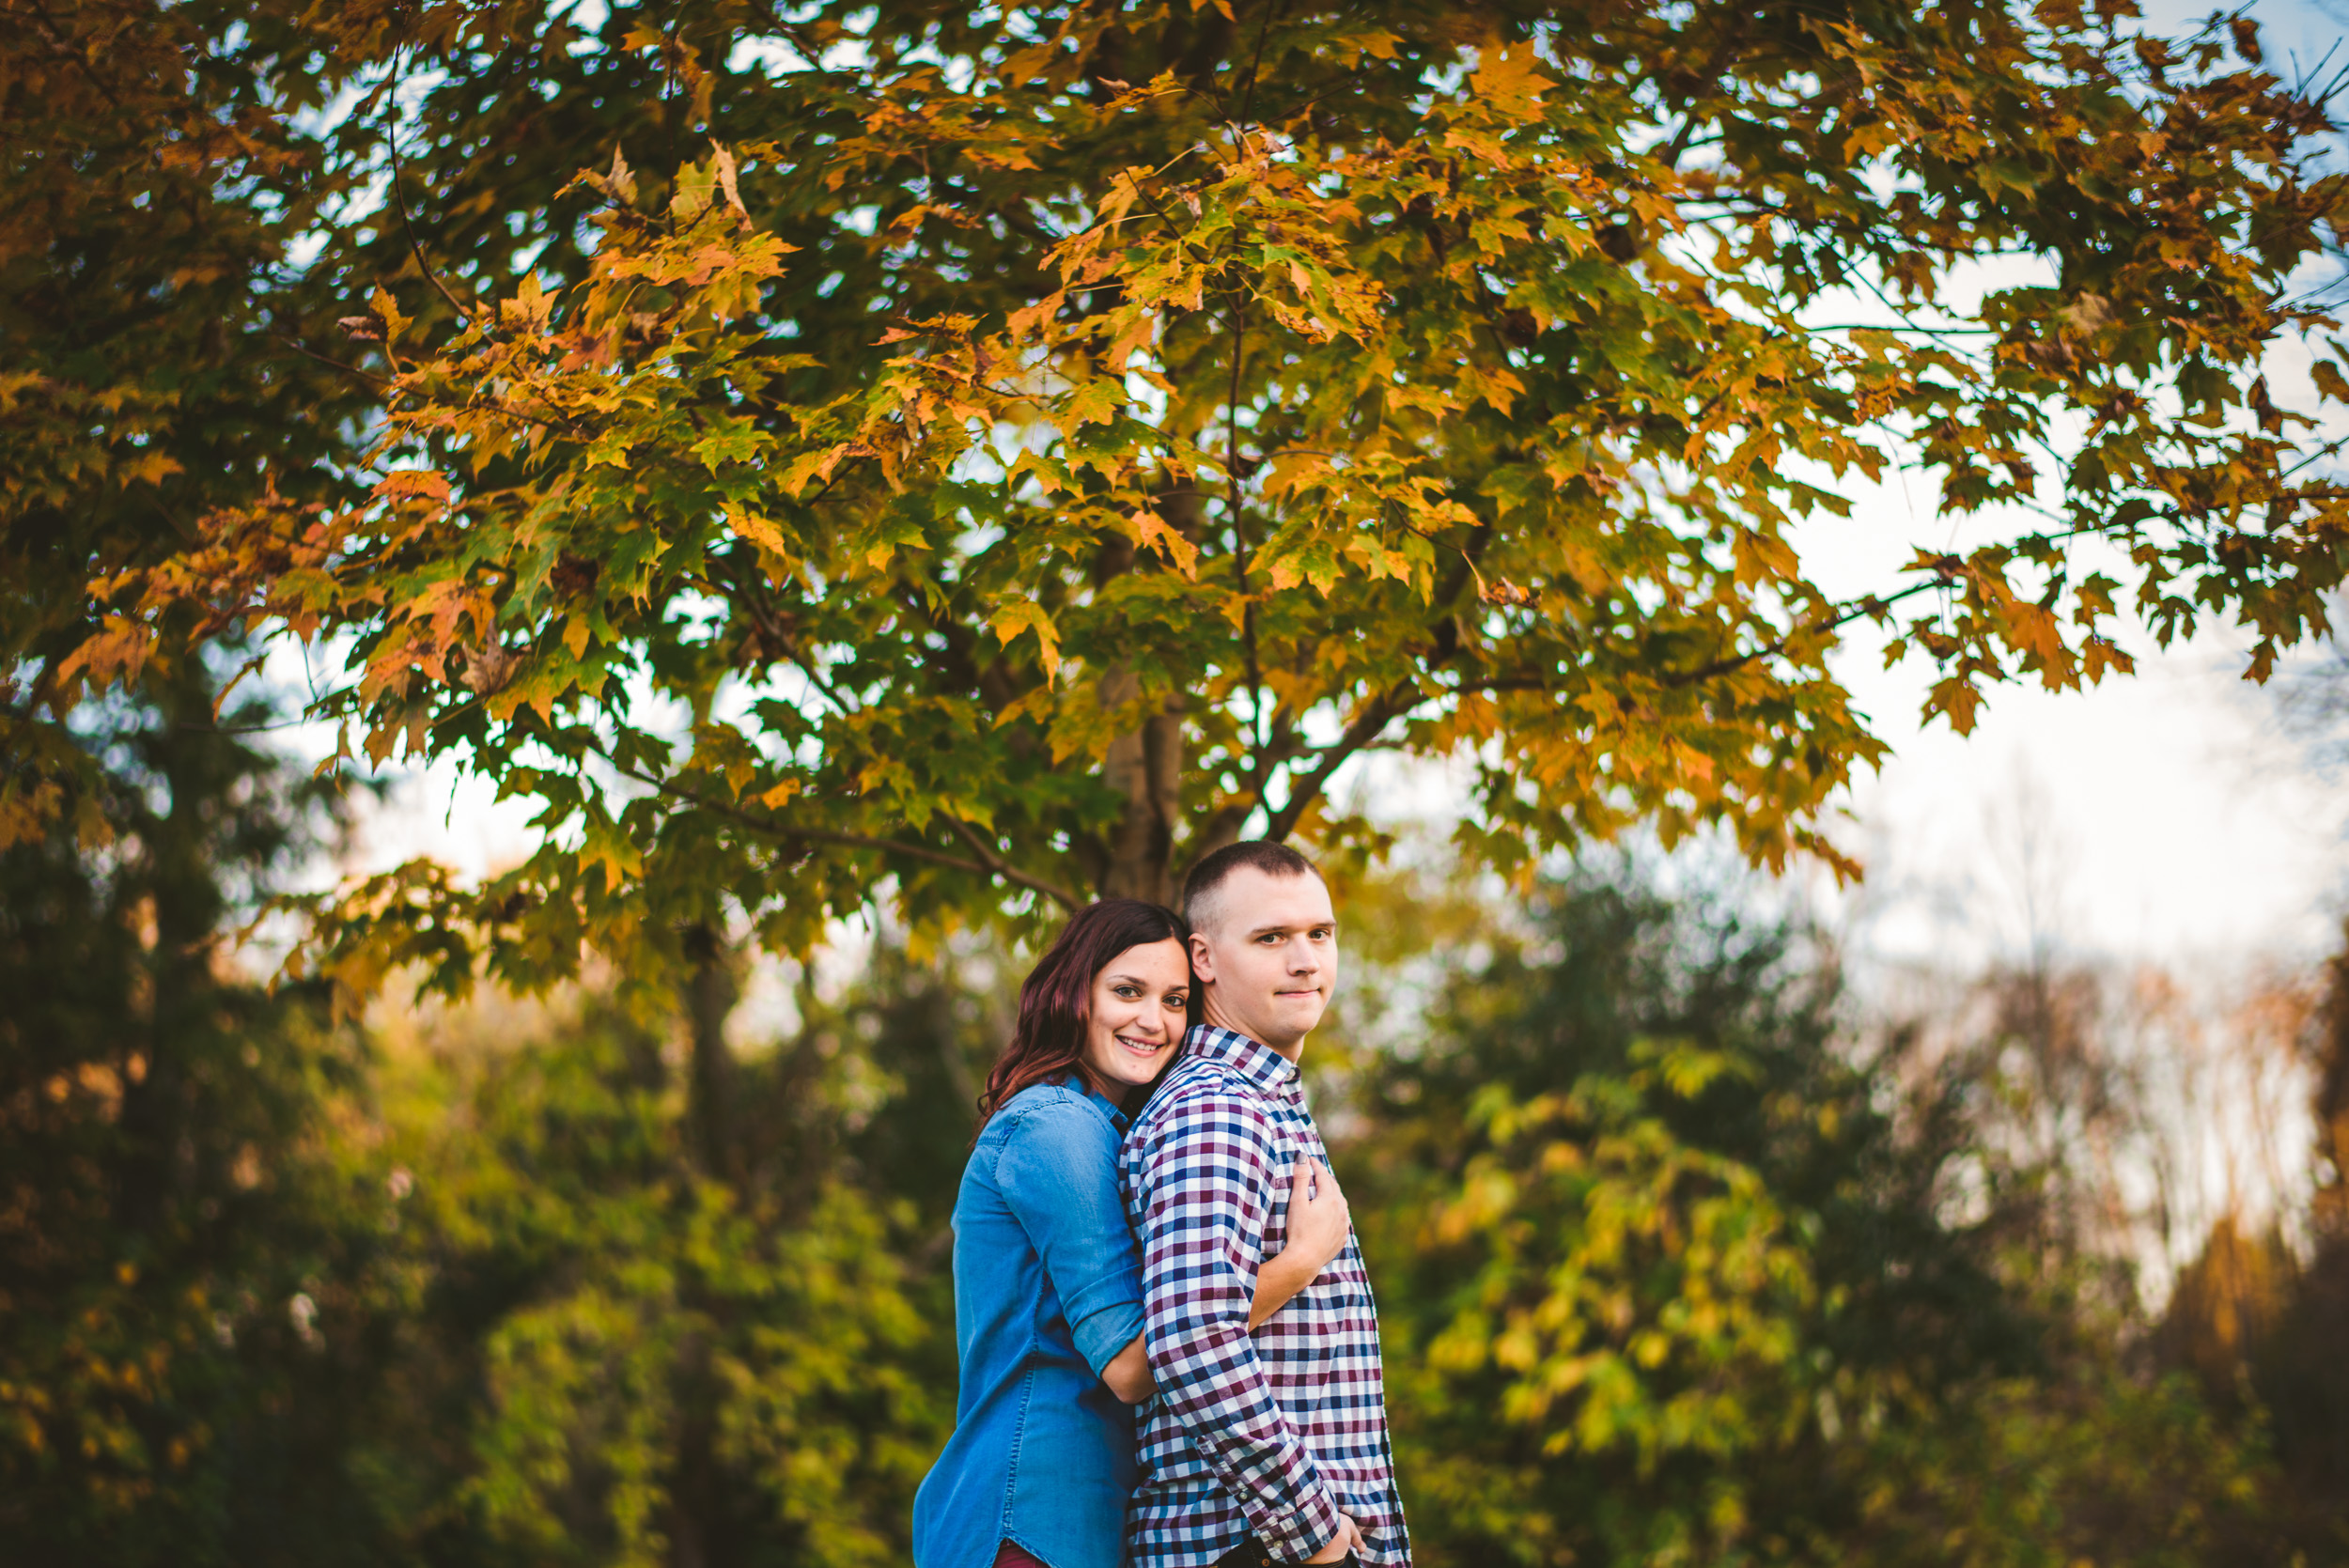 03-couple-fall-colors-kenosha-wedding-photographer